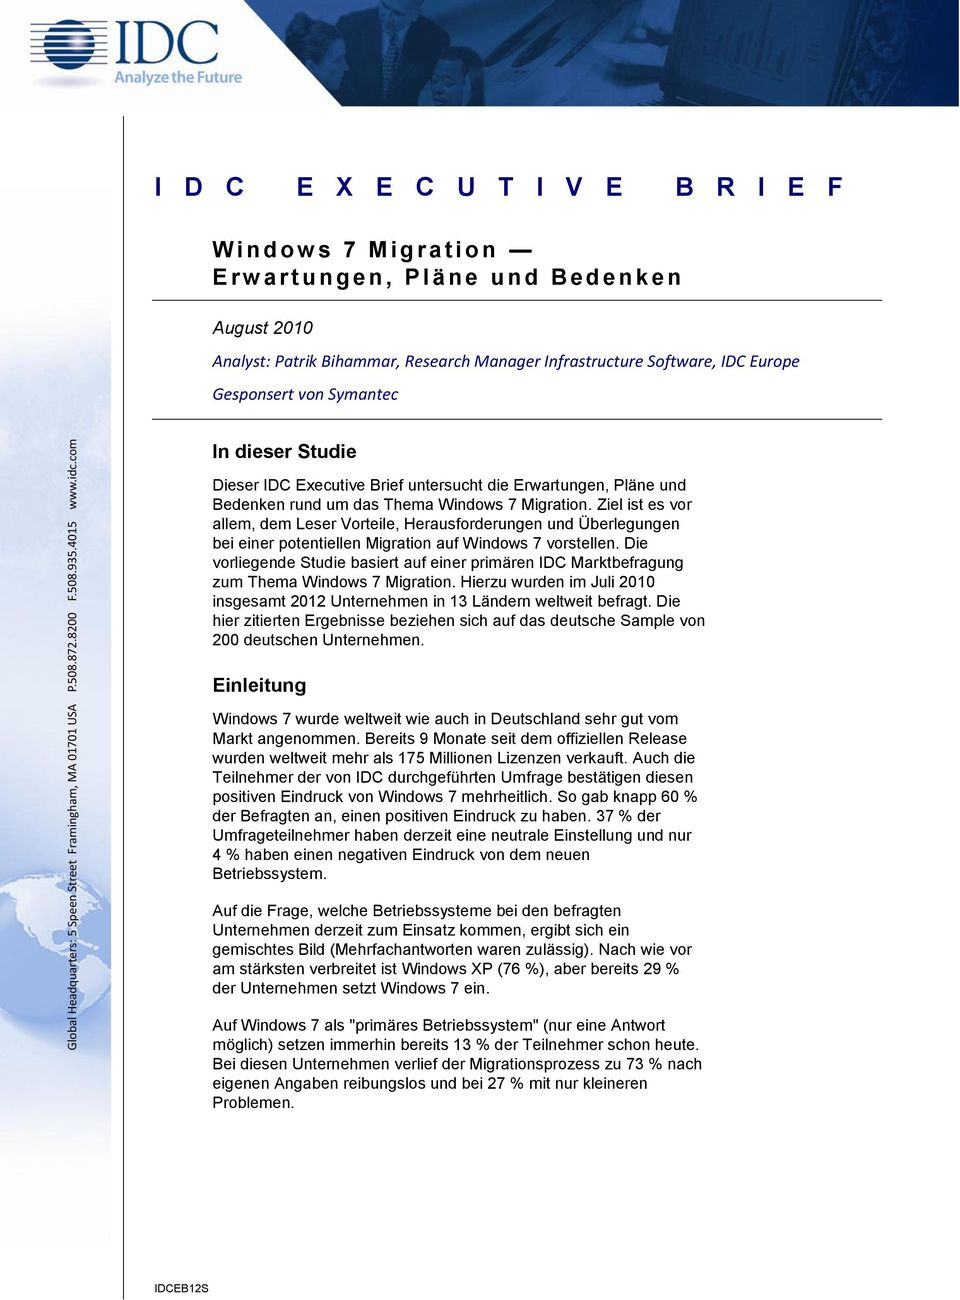 Software, IDC Europe Gesponsert von Symantec In dieser Studie Dieser IDC Executive Brief untersucht die Erwartungen, Pläne und Bedenken rund um das Thema Windows 7 Migration.